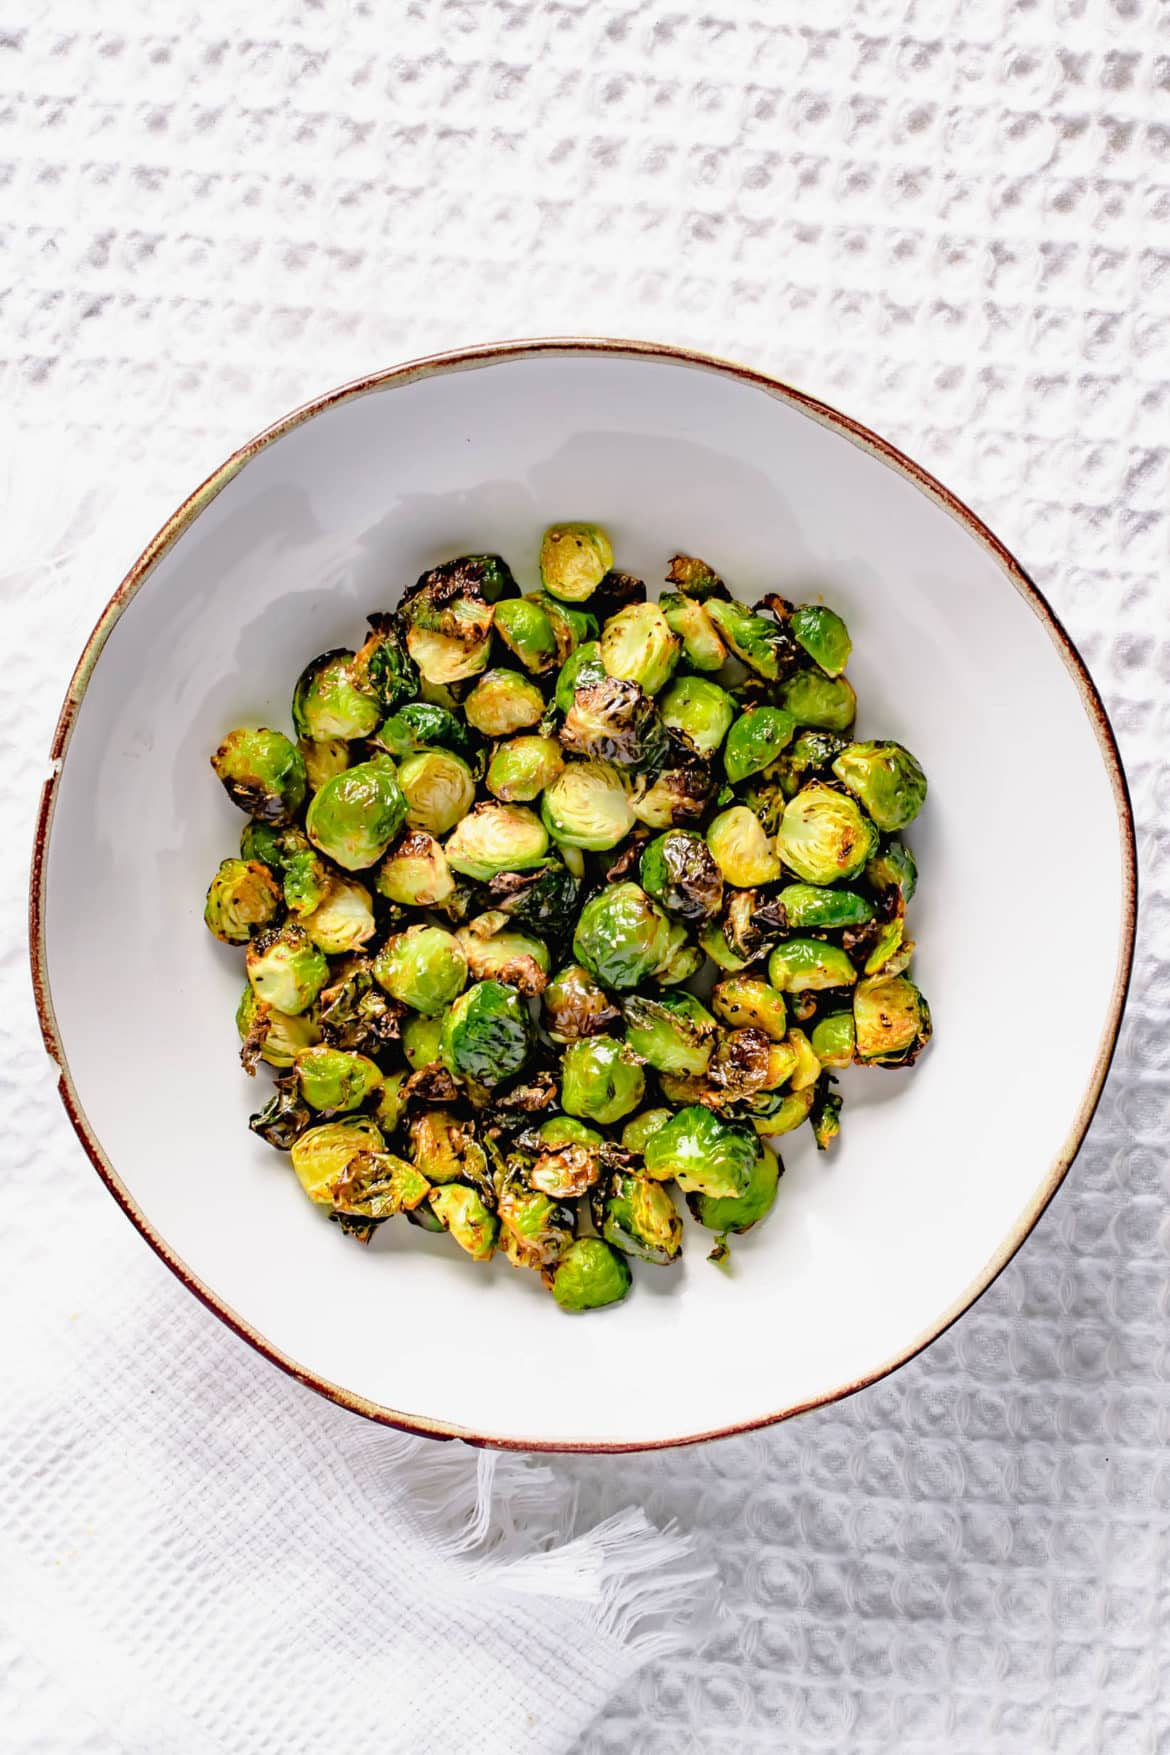 Actifry Sprouts Recipe